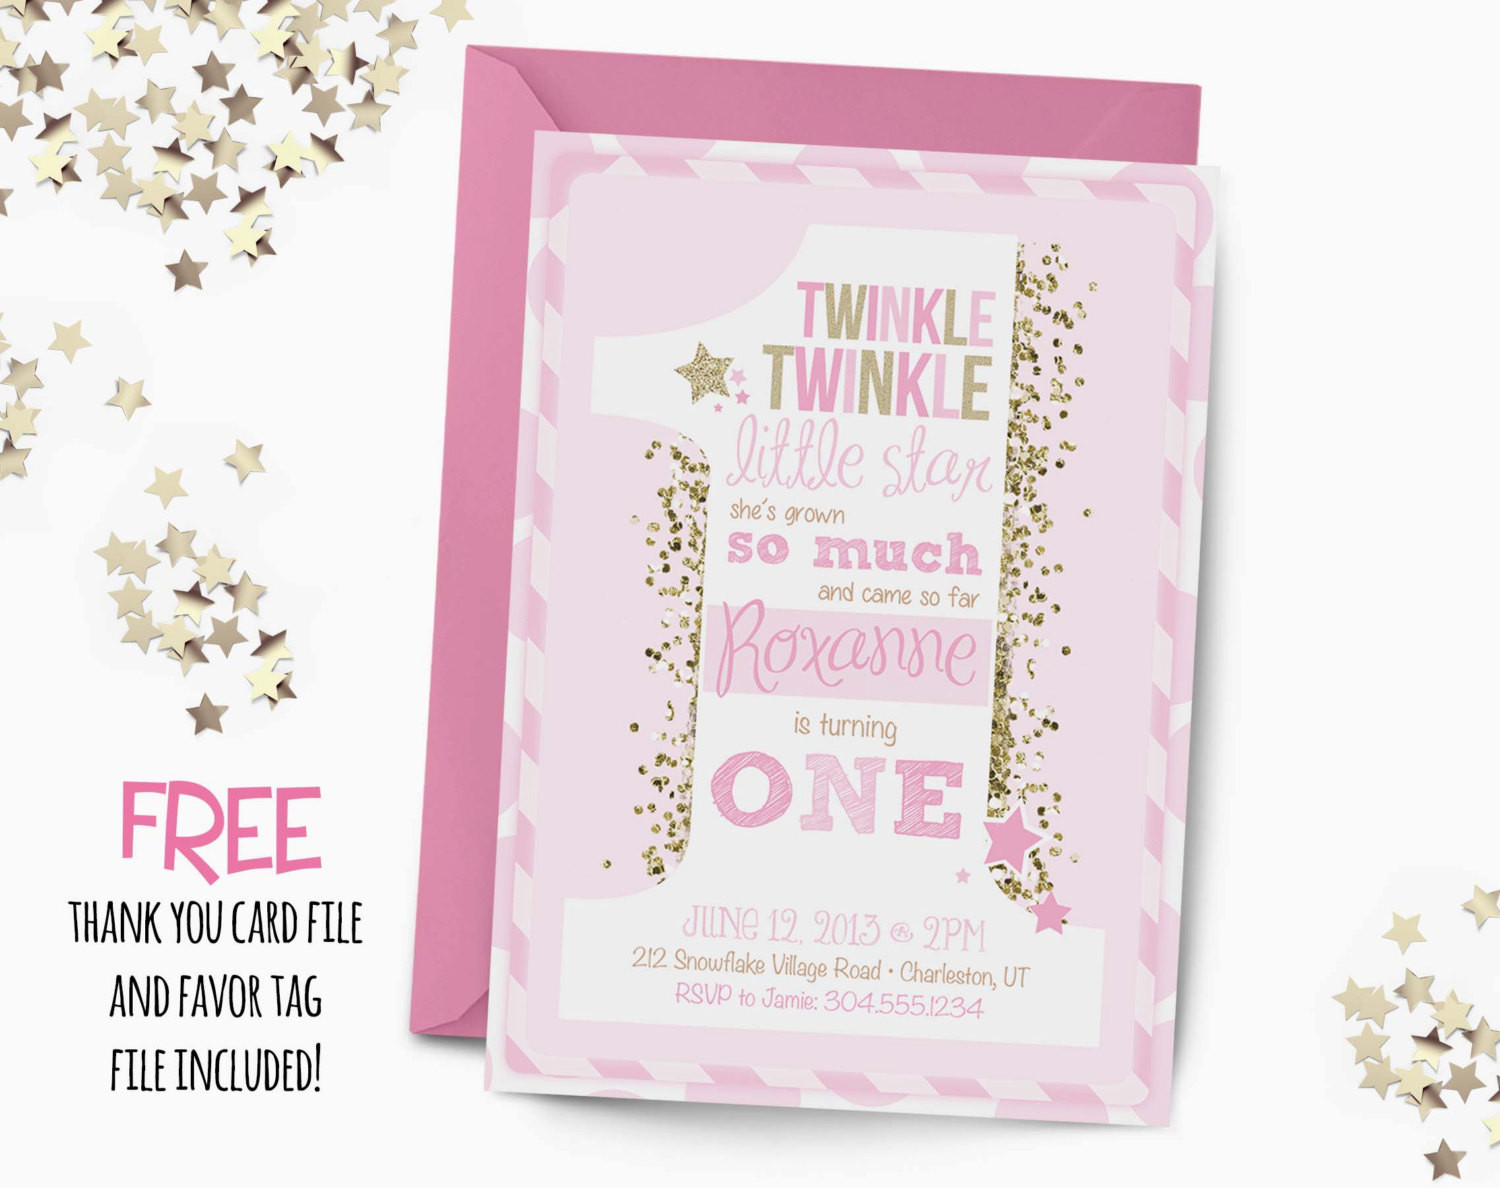 Best ideas about Twinkle Twinkle Little Star 1st Birthday Invitations . Save or Pin Twinkle little star Birthday Invitation first by Now.